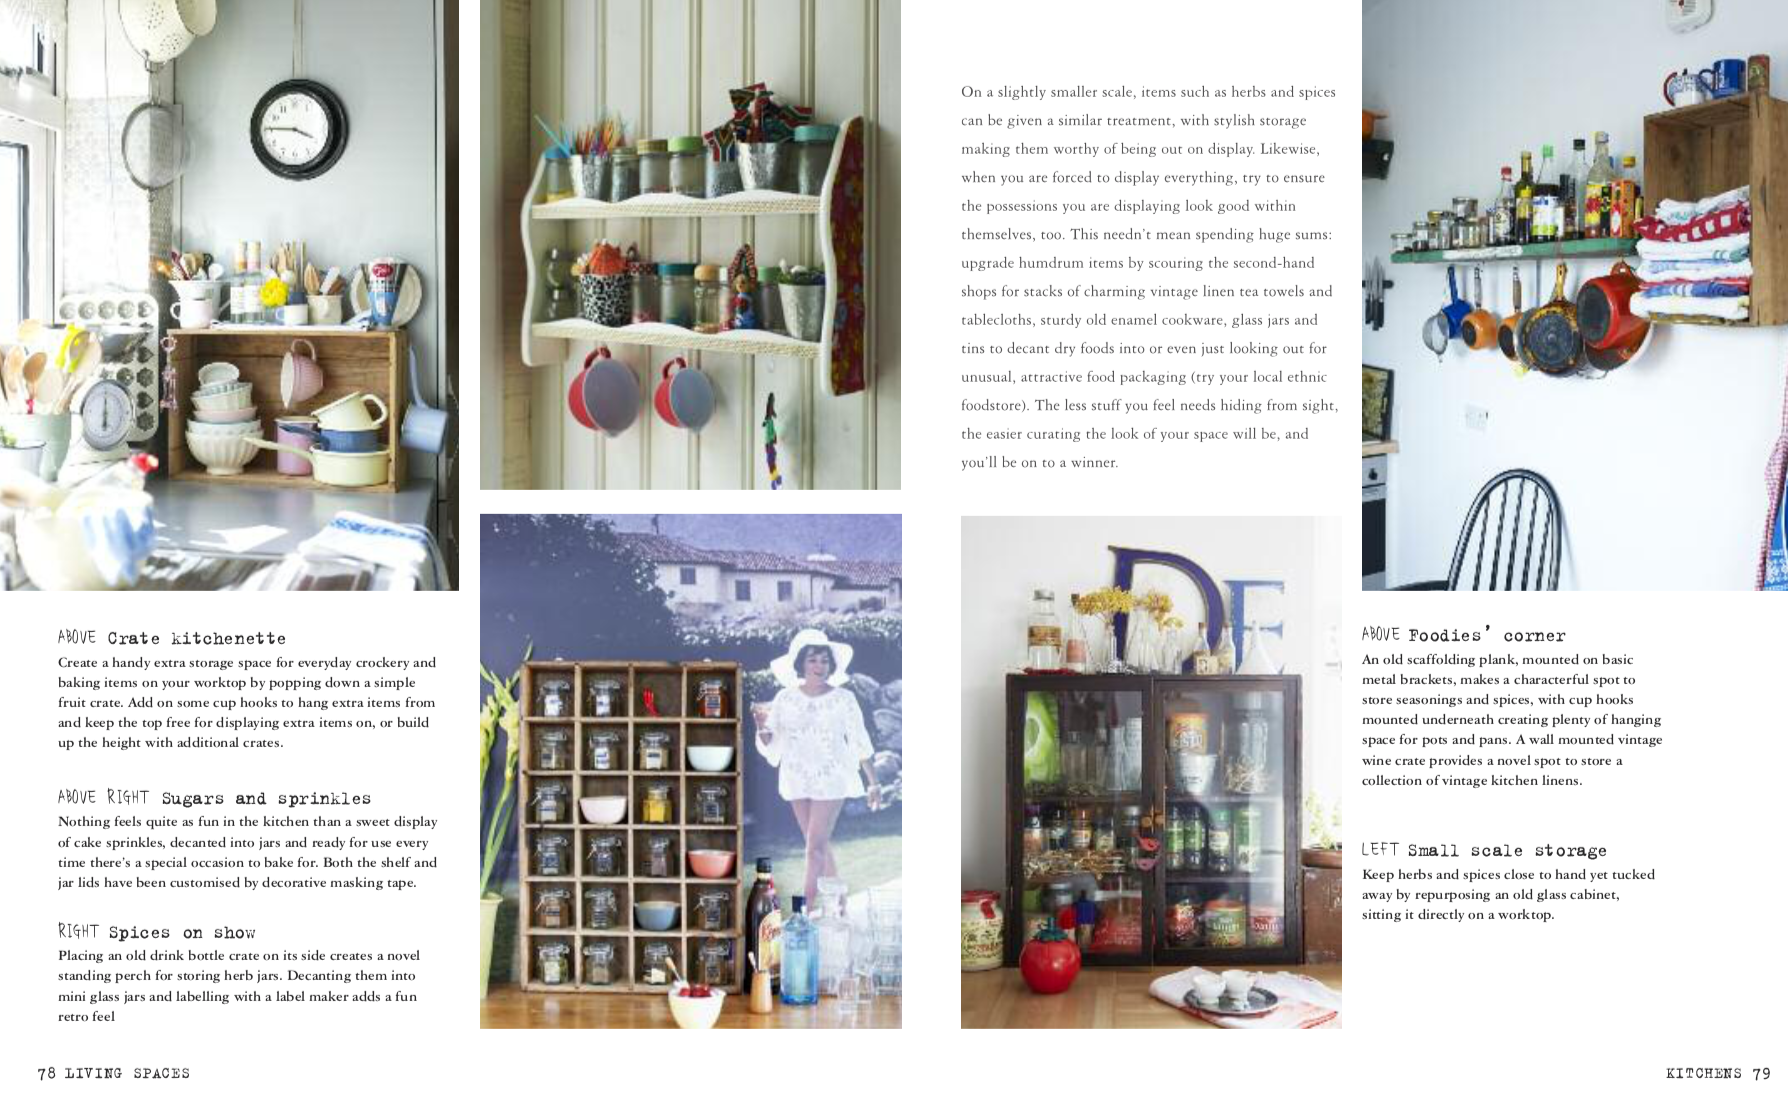 Insta Style for Your Living Space by Joanna Thornhill P78-79.png